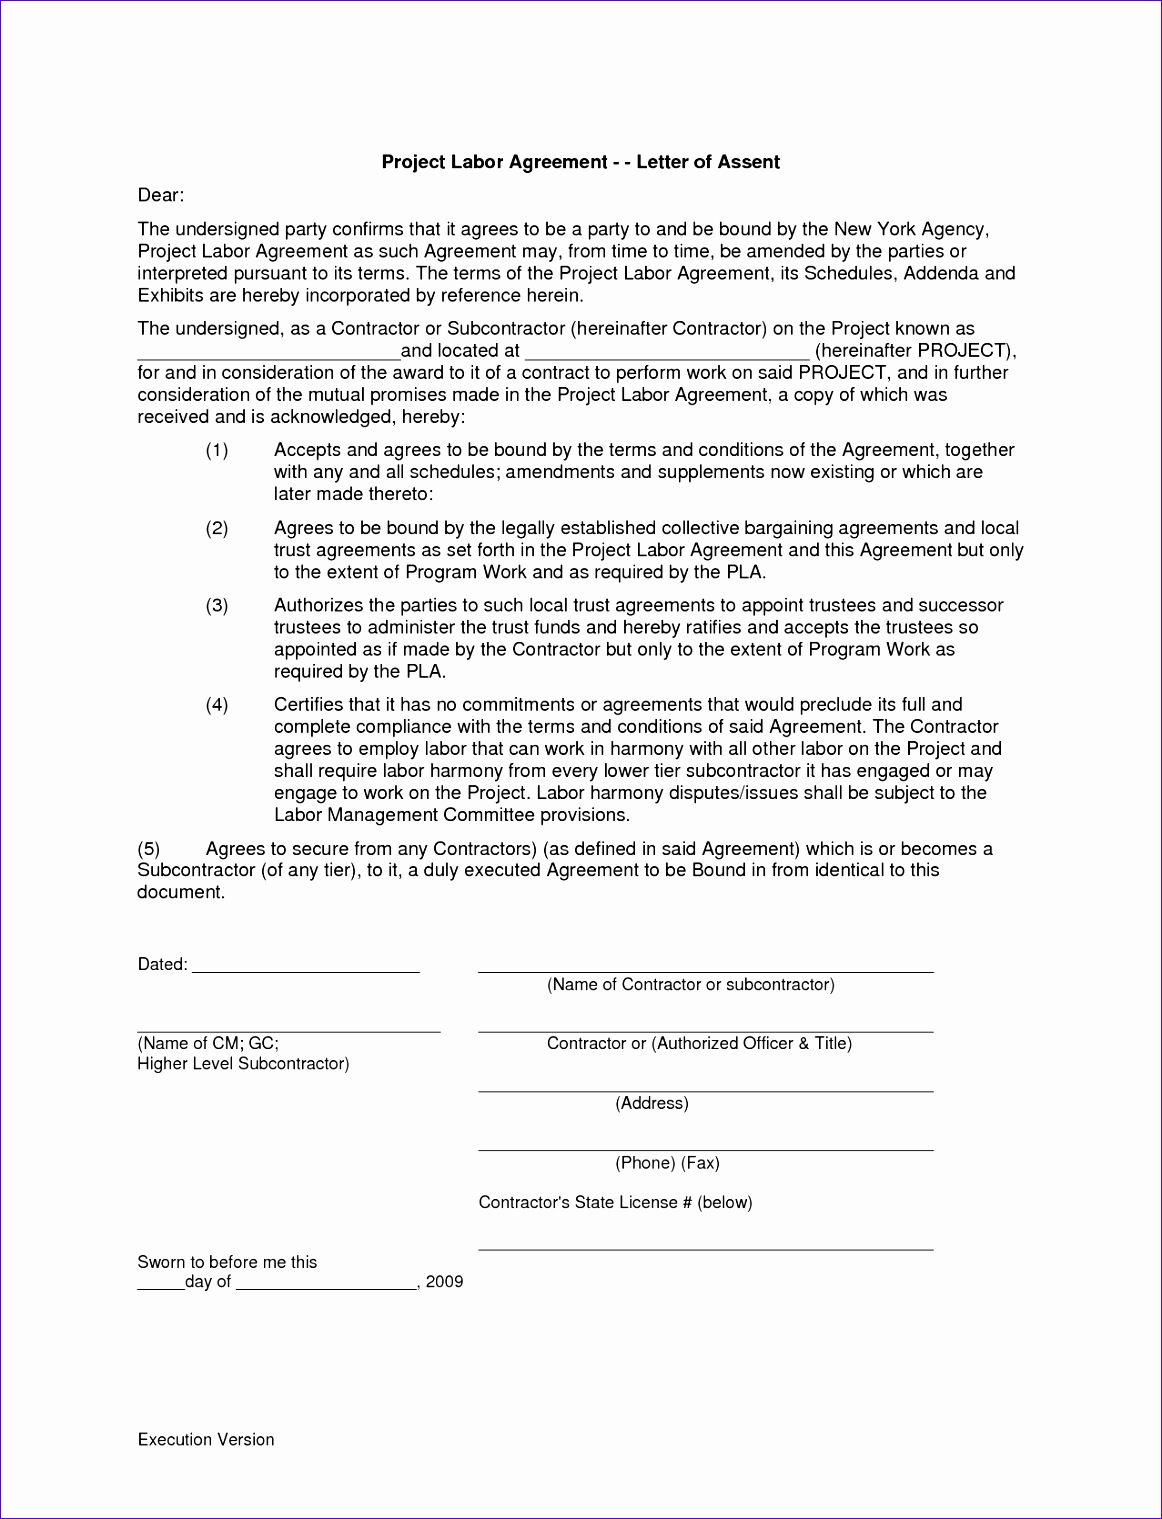 Purchase order form Template Excel Rzsue Best Of 8 Contract Labor Agreement 12771652